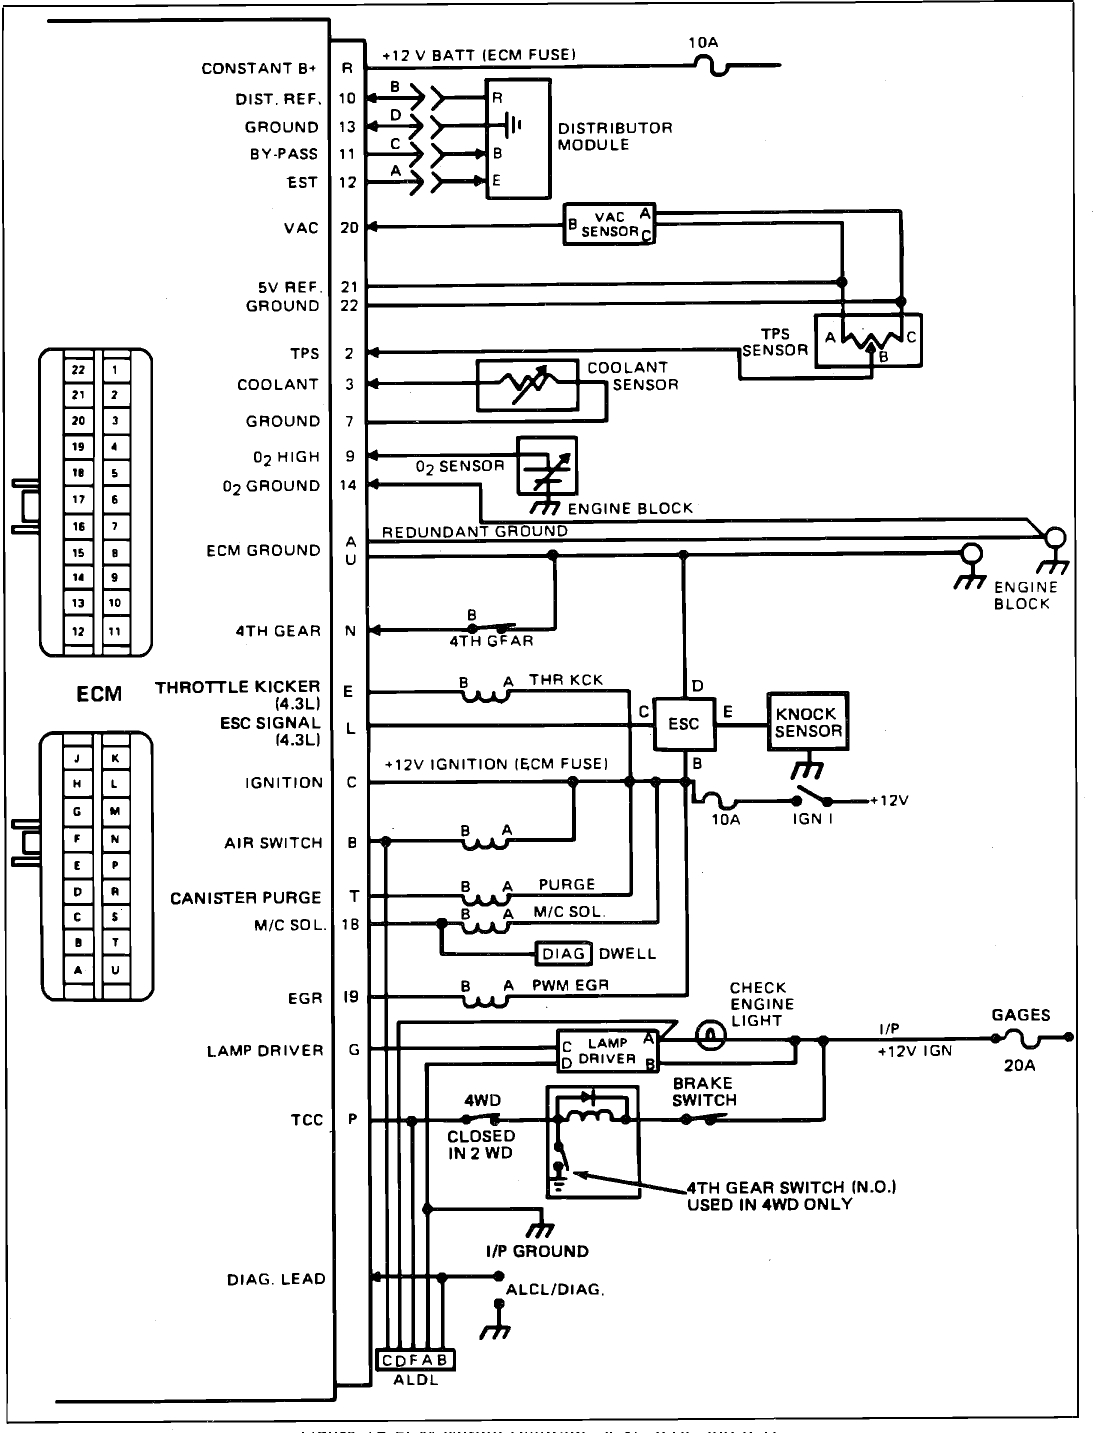 I Need A Fuse Box Diagram With Wiring Colors